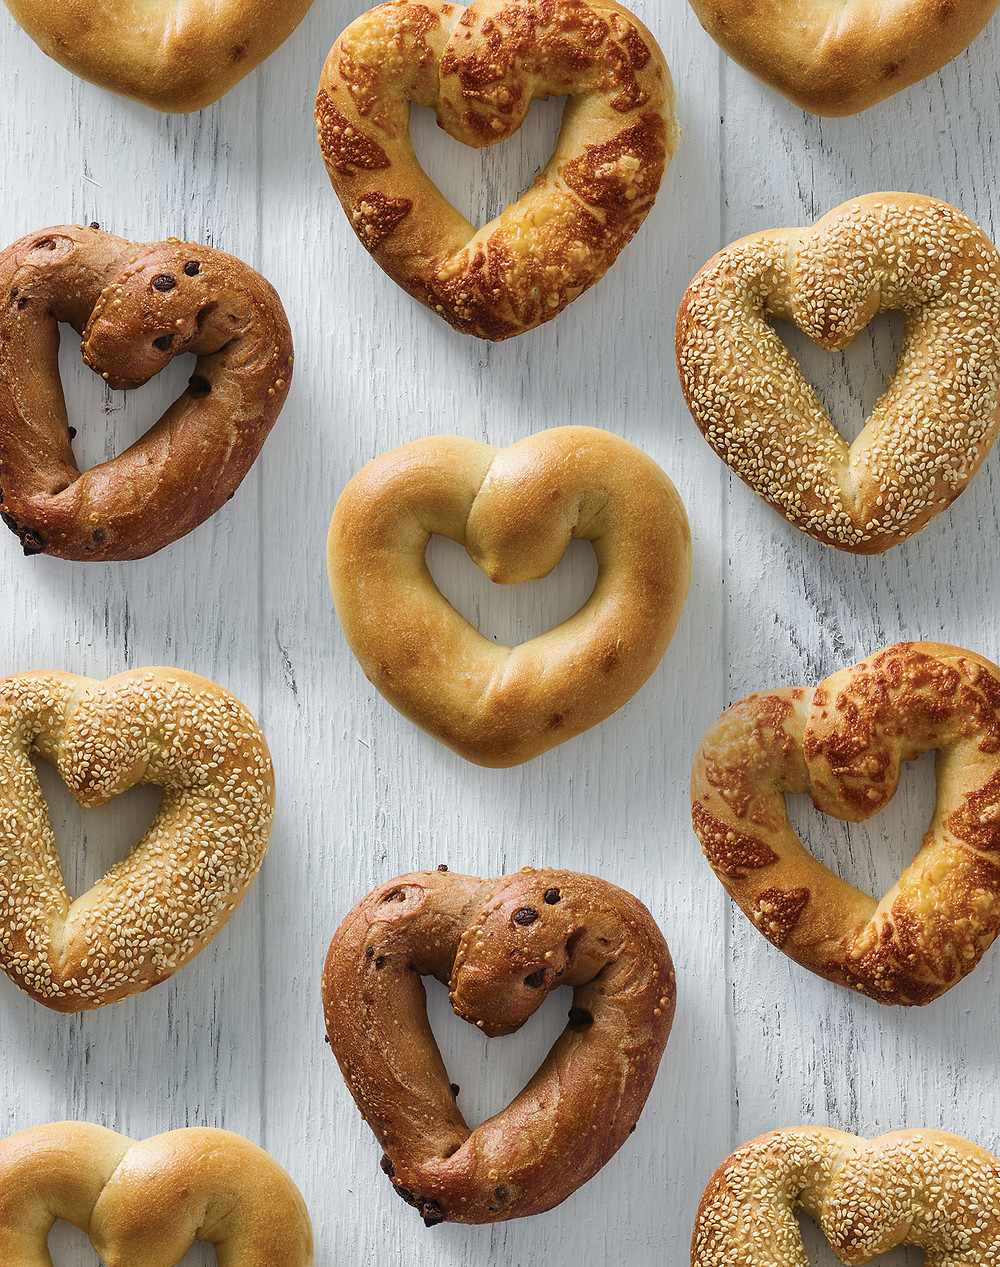 FORGET FLOWERS! EINSTEIN BROS. BAGELS OFFERS   HEART BAGELS FOR MOTHER'S DAY